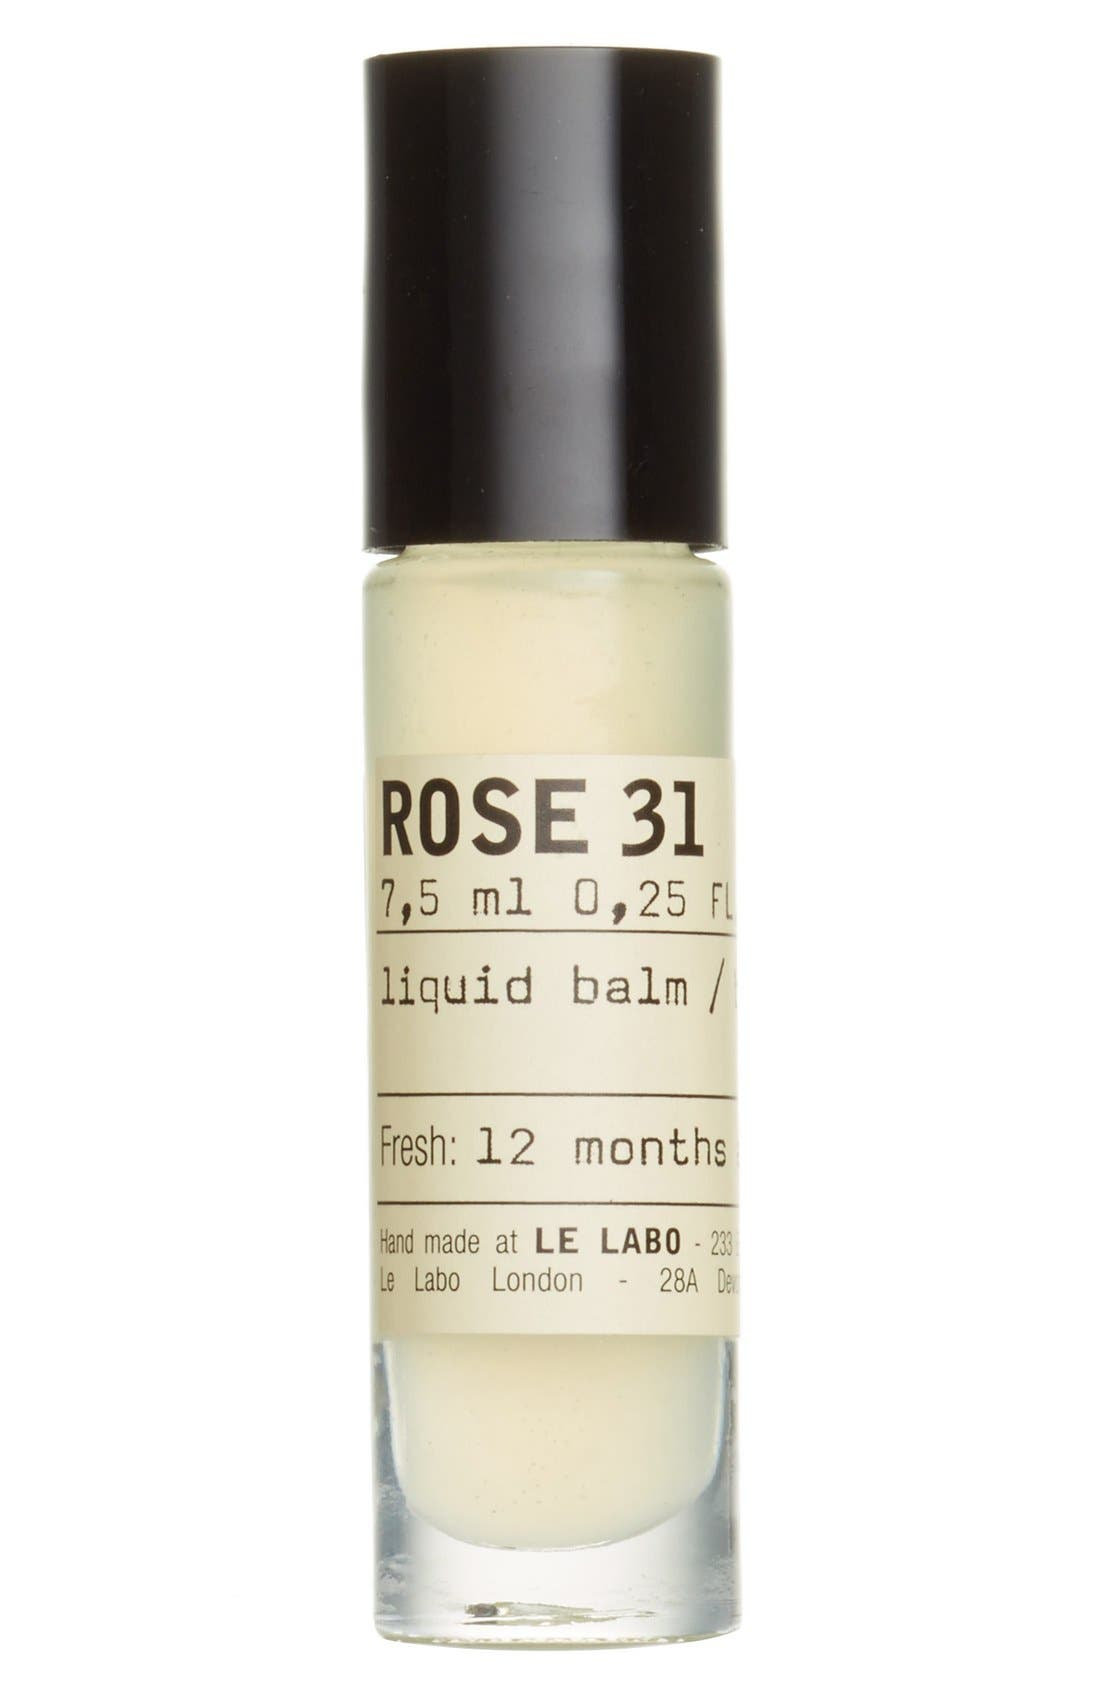 Le Labo 'Rose 31' Liquid Balm